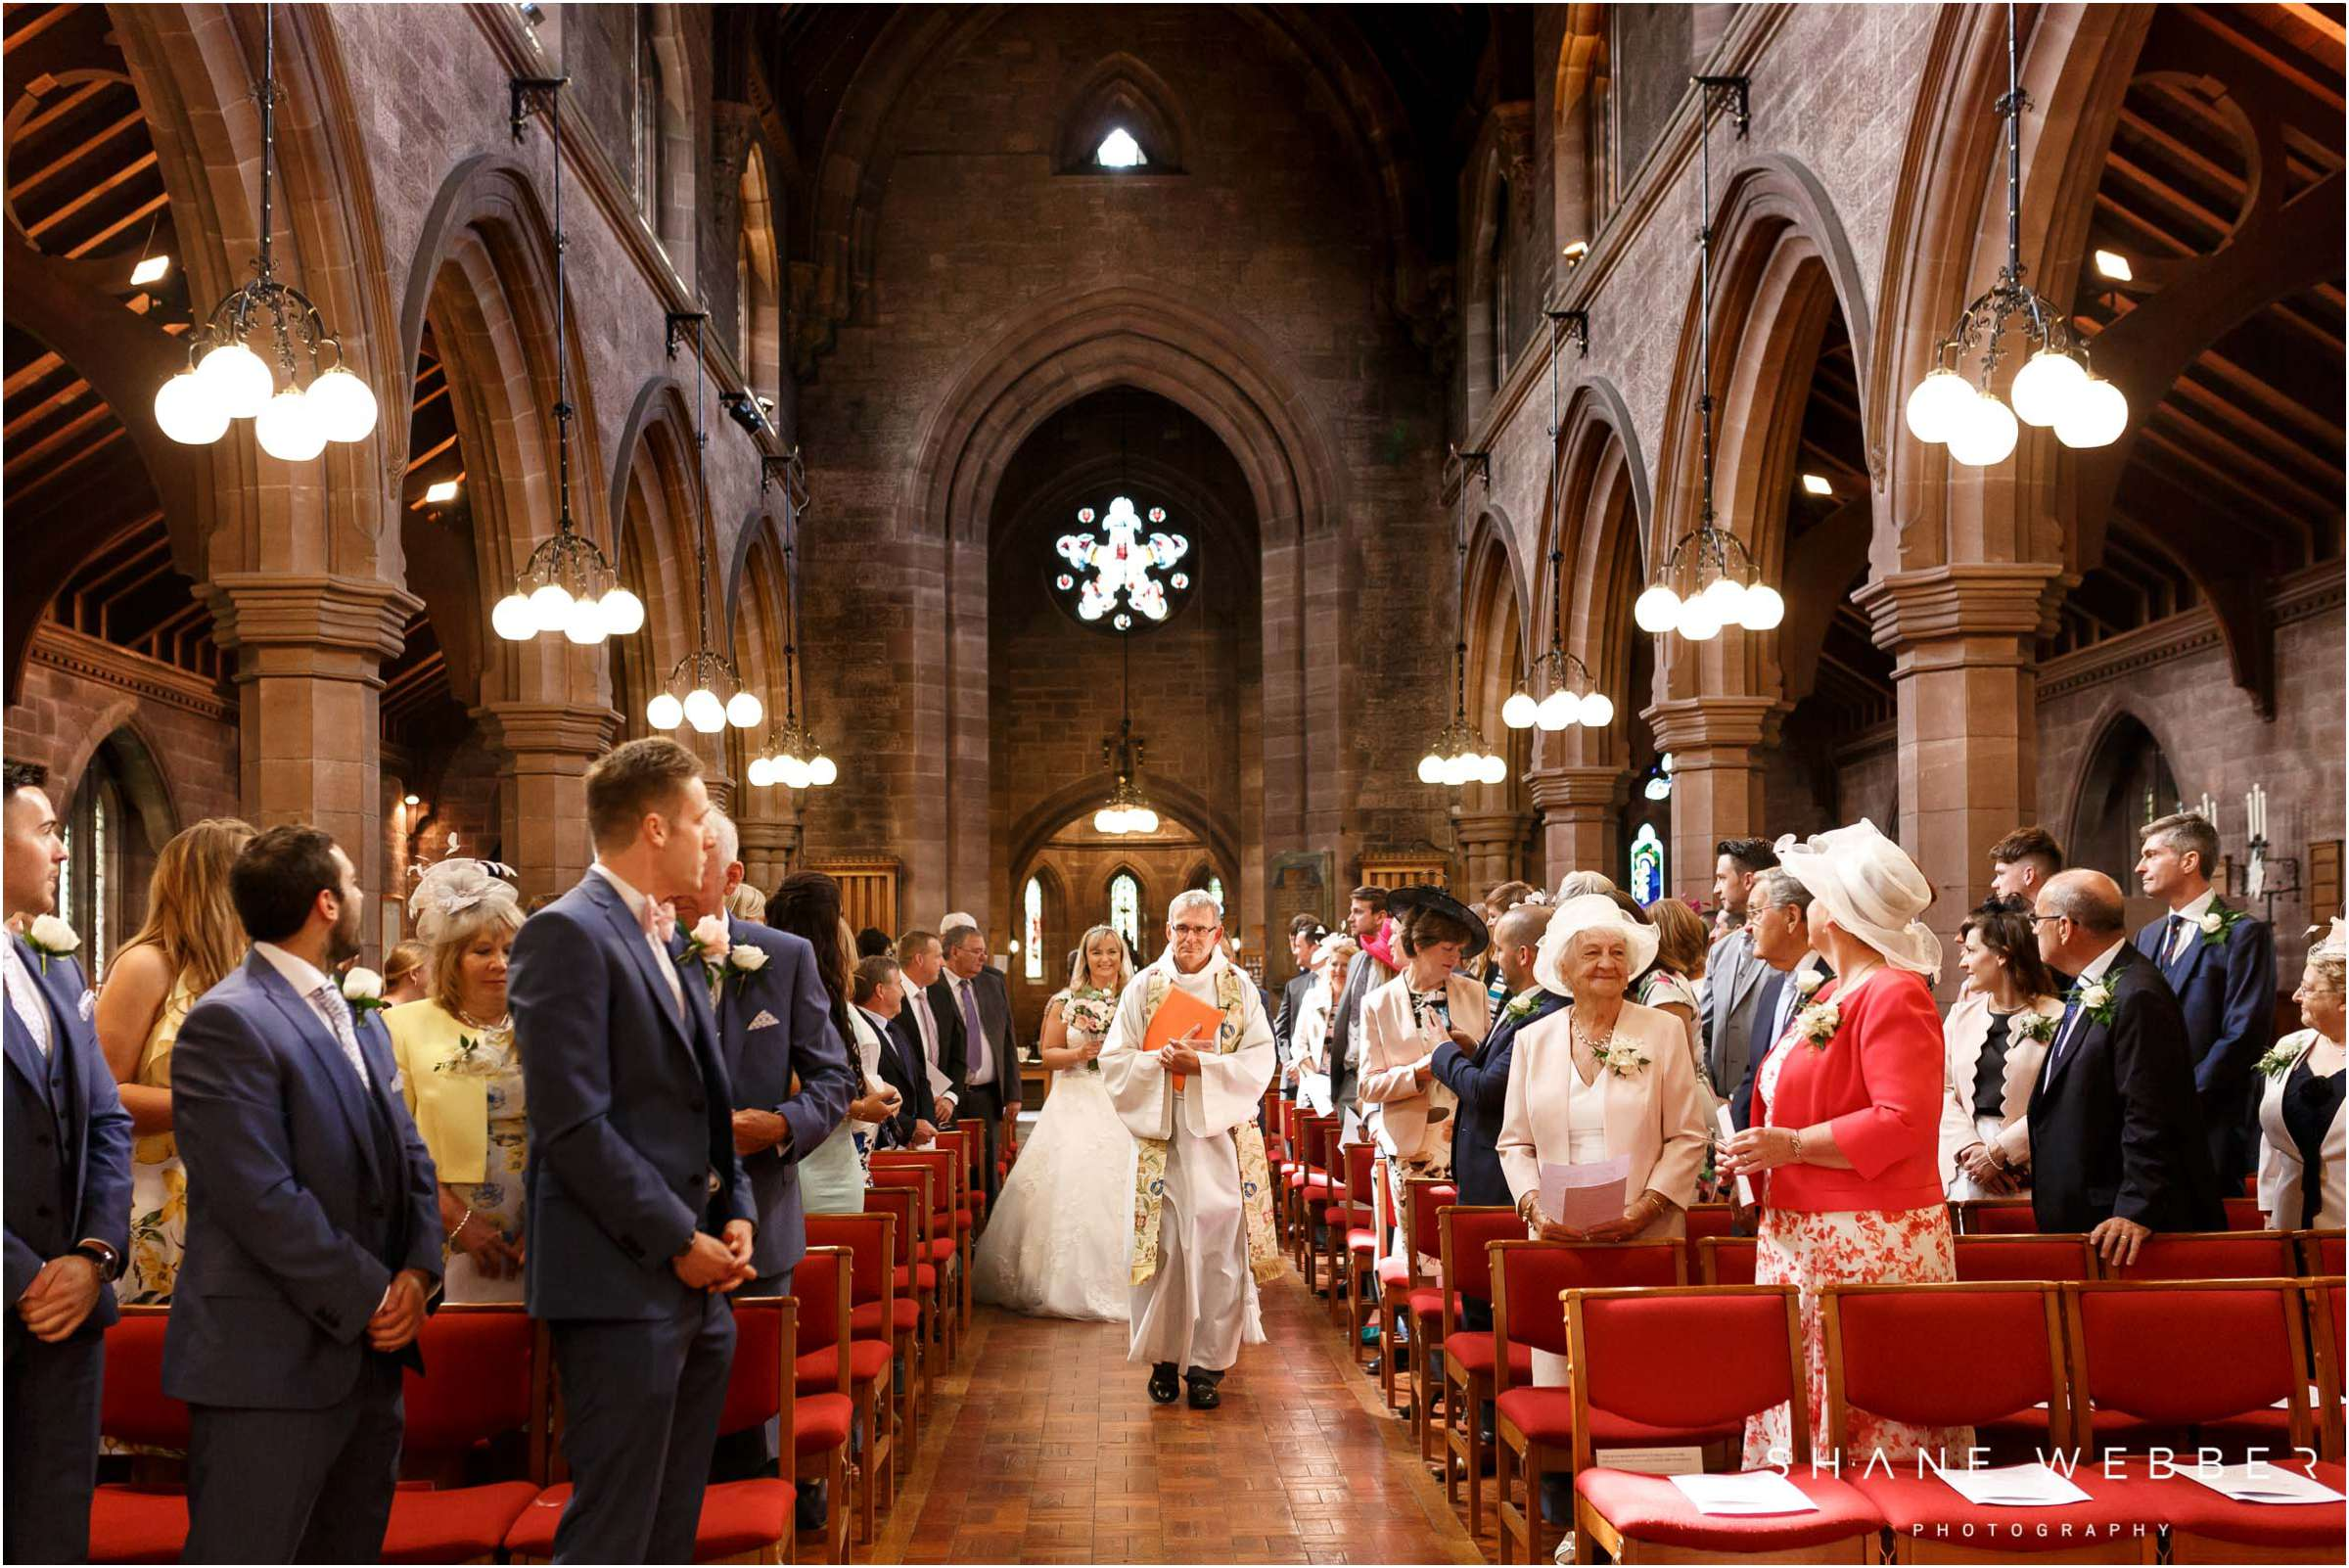 Saint Mary Without-The-Walls wedding